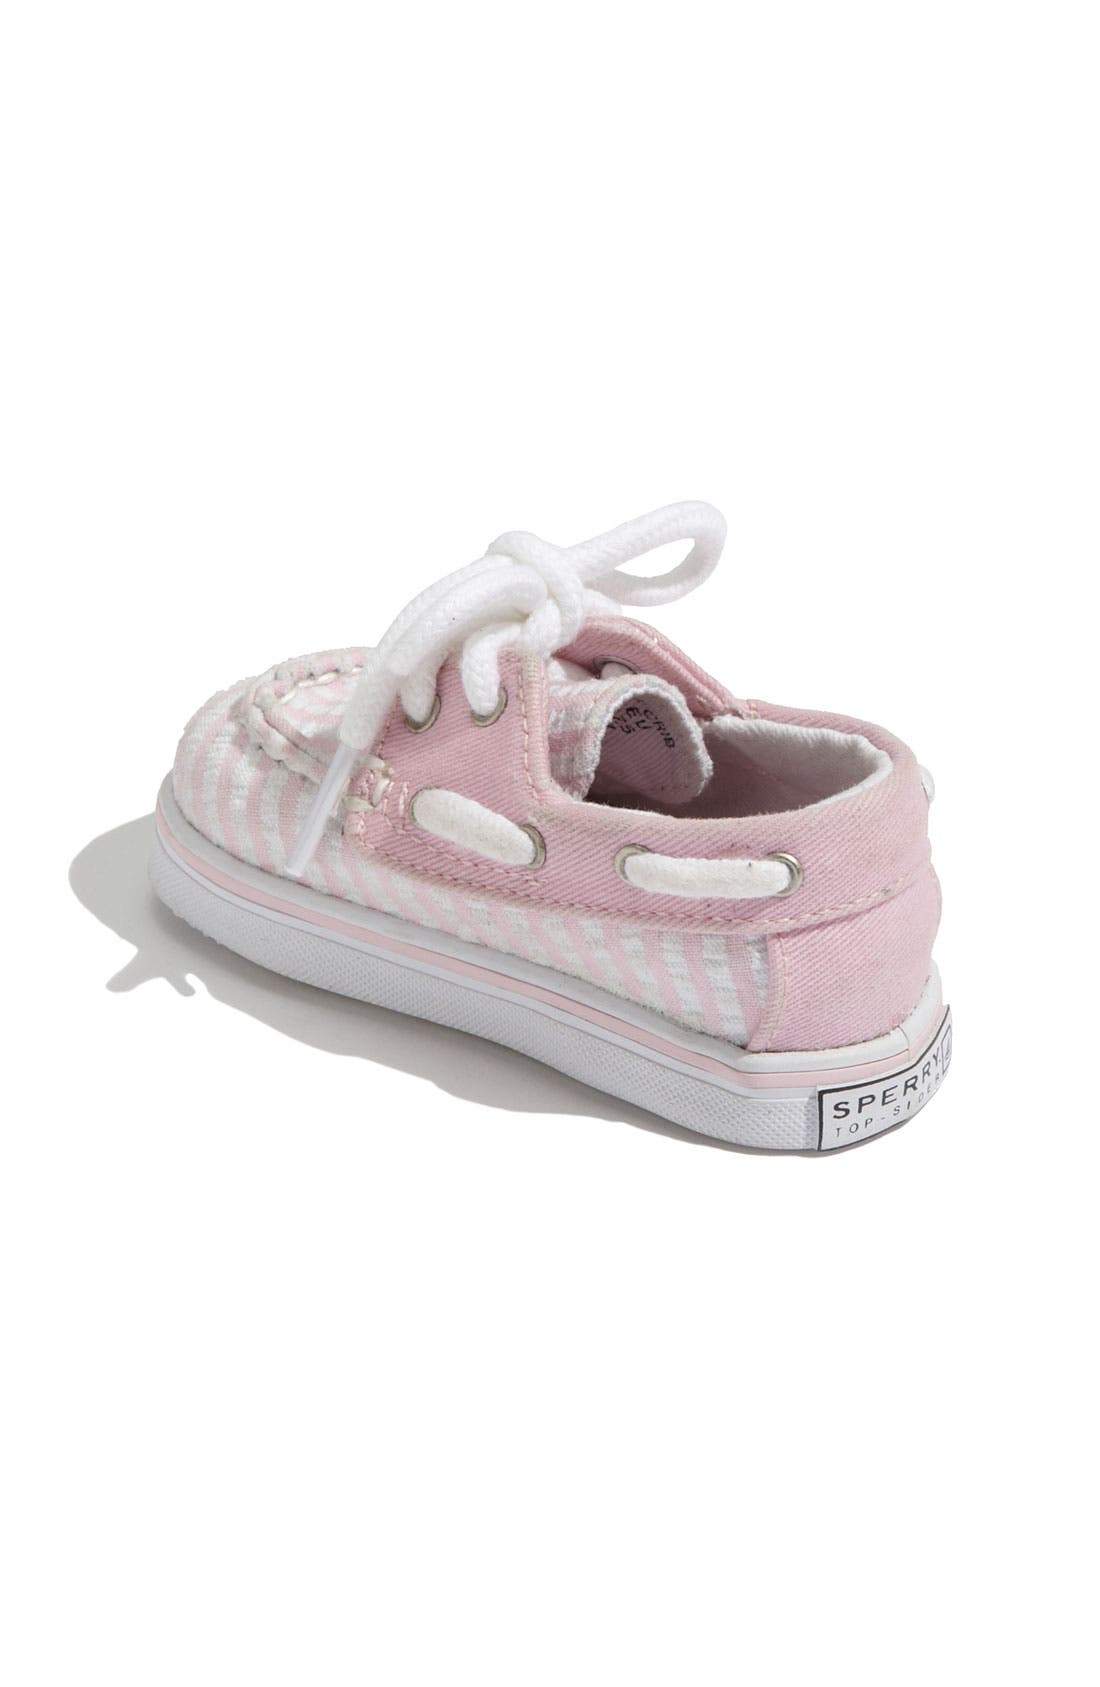 Alternate Image 2  - Sperry Kids 'Bahama' Crib Shoe (Baby)